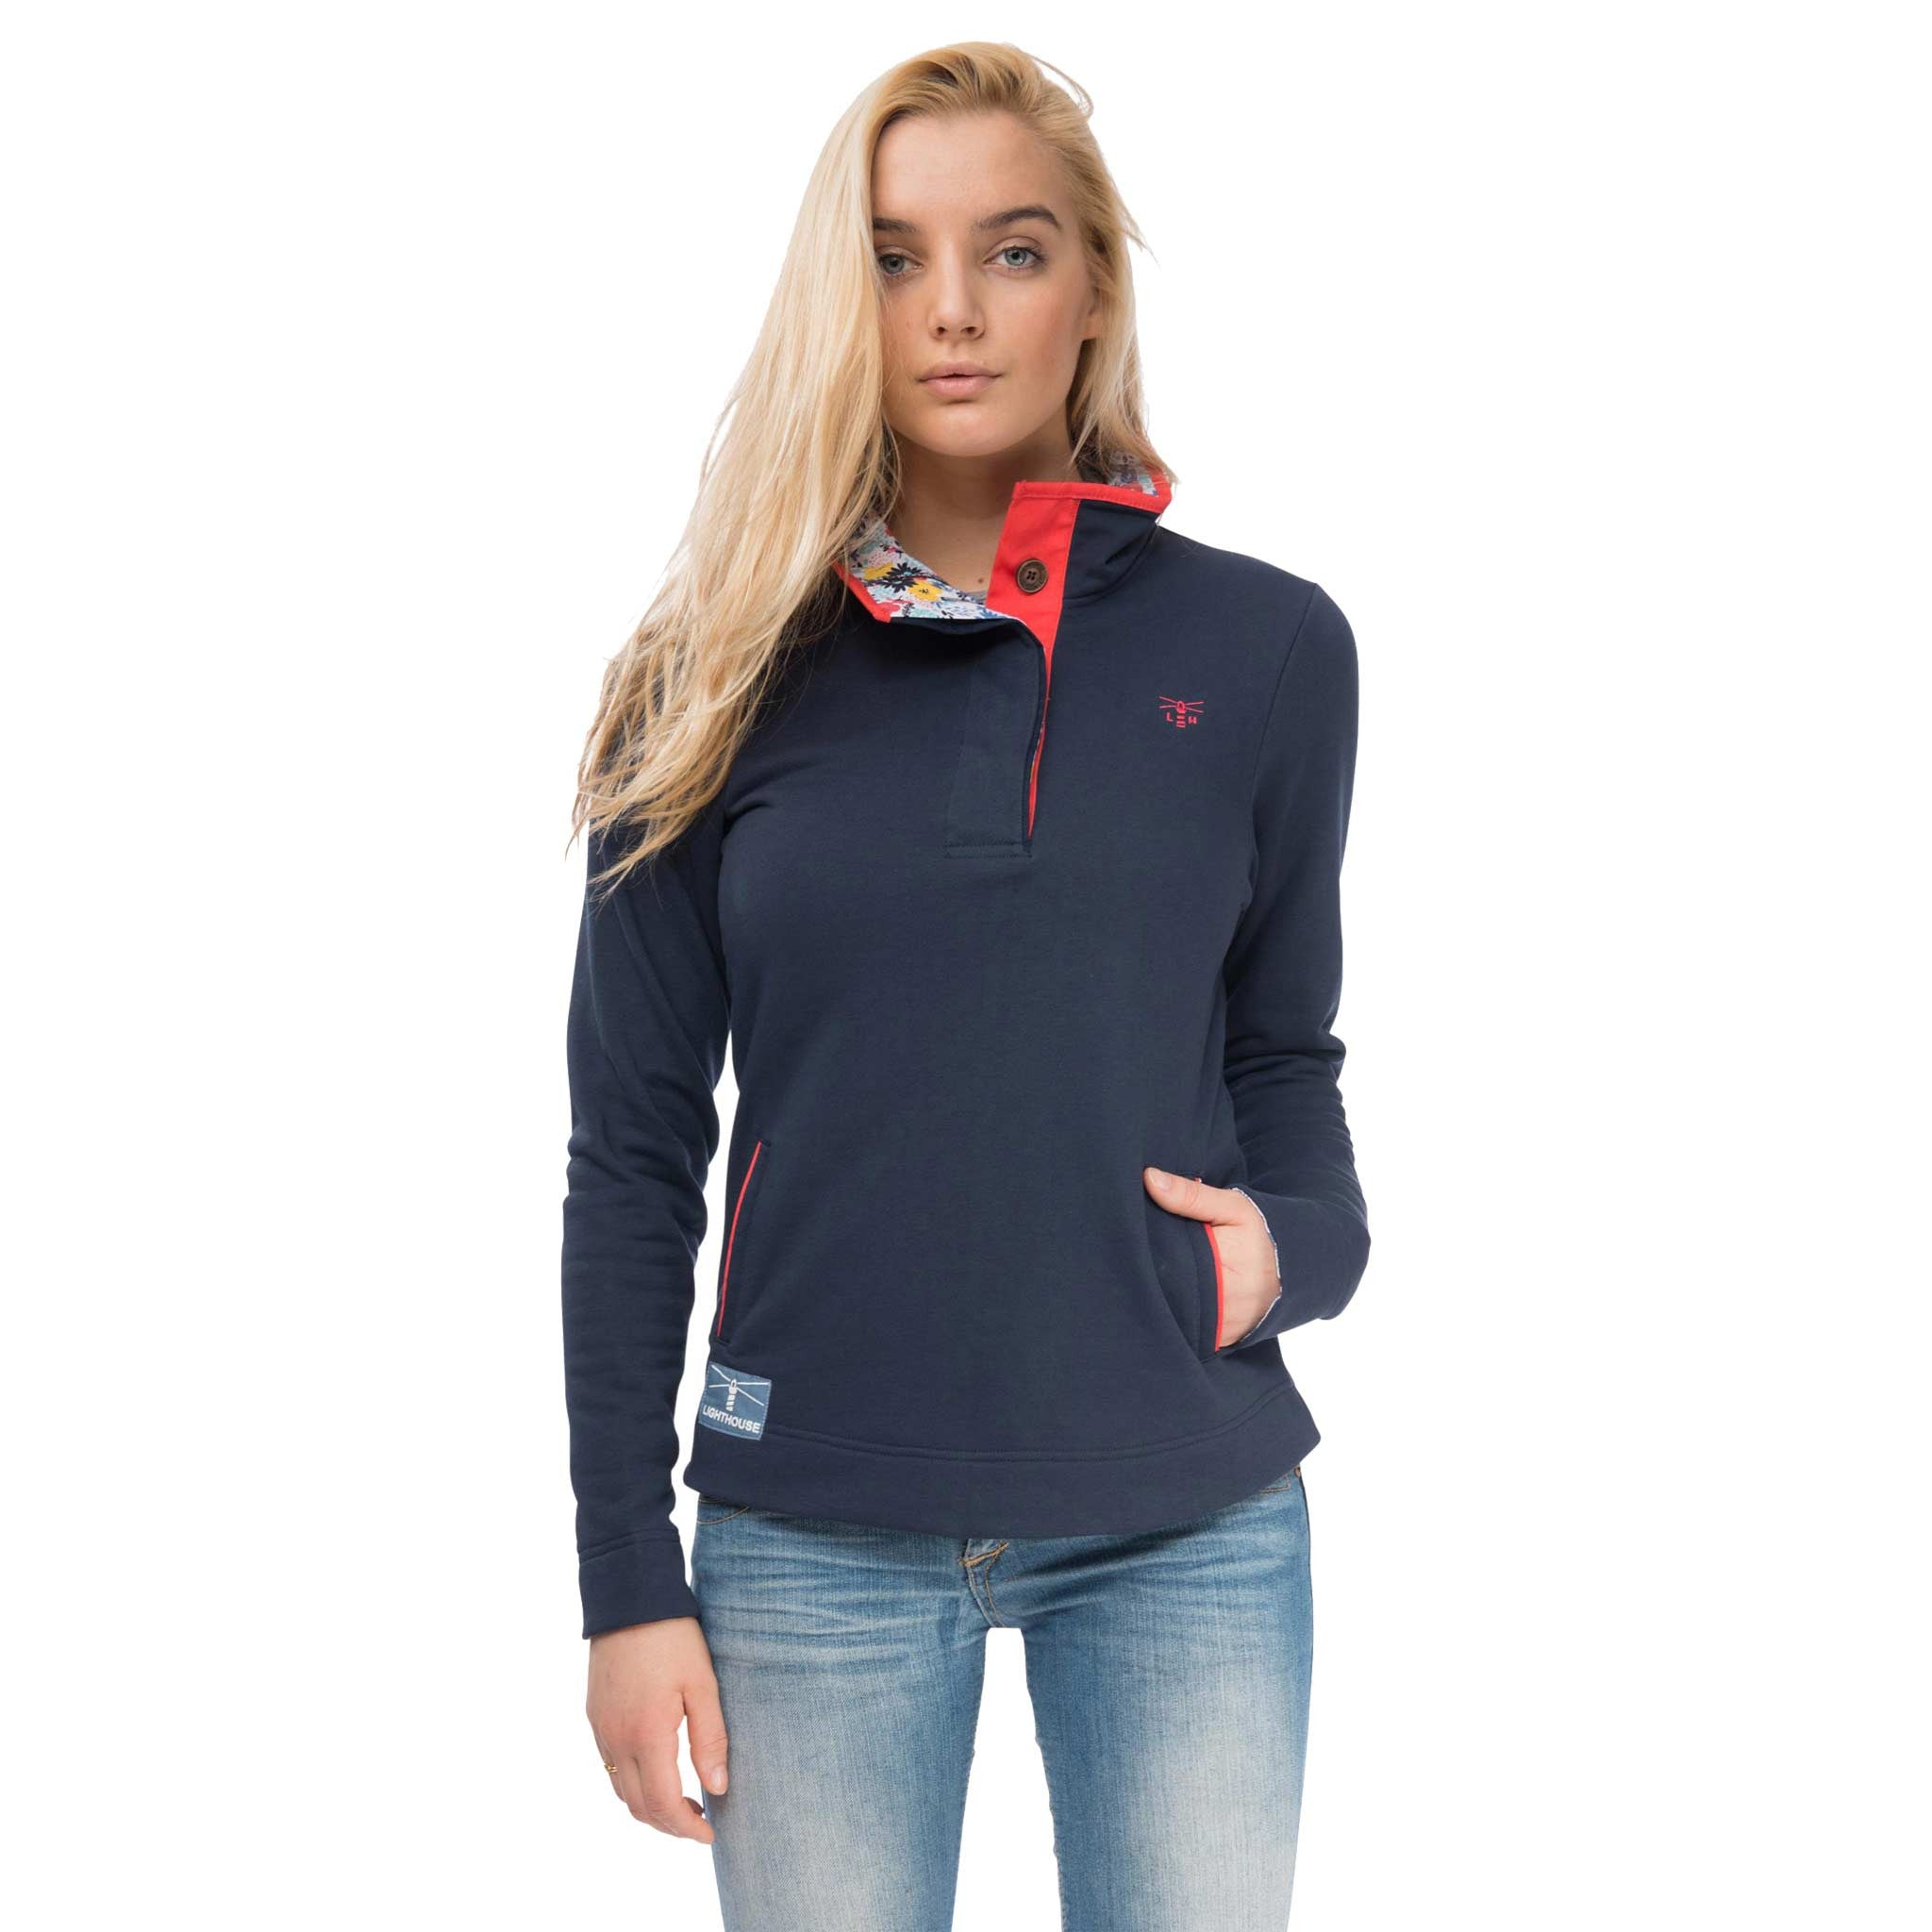 Coney Womens Half Button Sweatshirt in Night Sky, Modelled Front View | Lighthouse